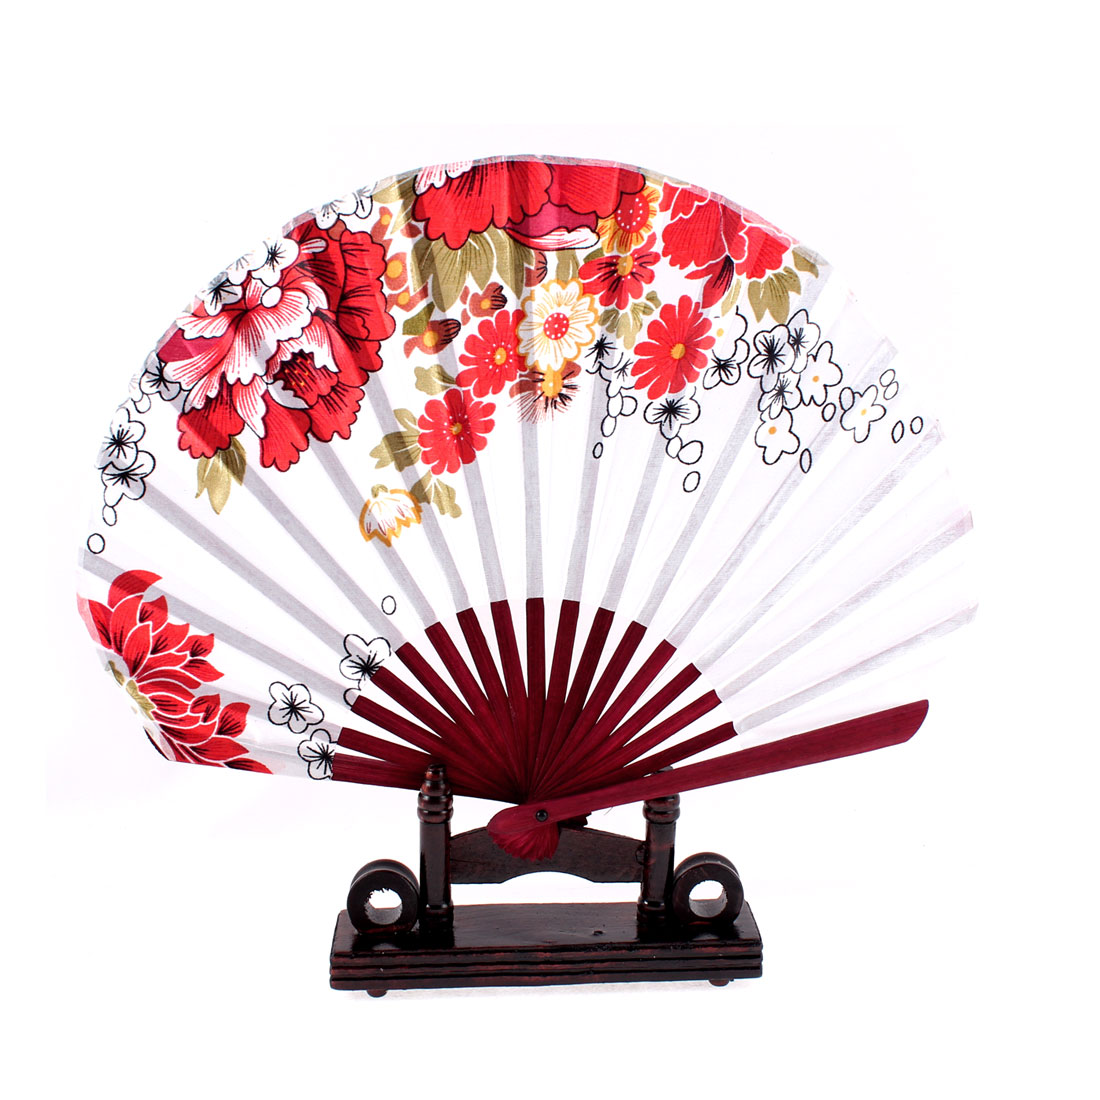 Sakura Flower Design Burgundy Chinese Fabric Folding Hand Fan w Display Holder